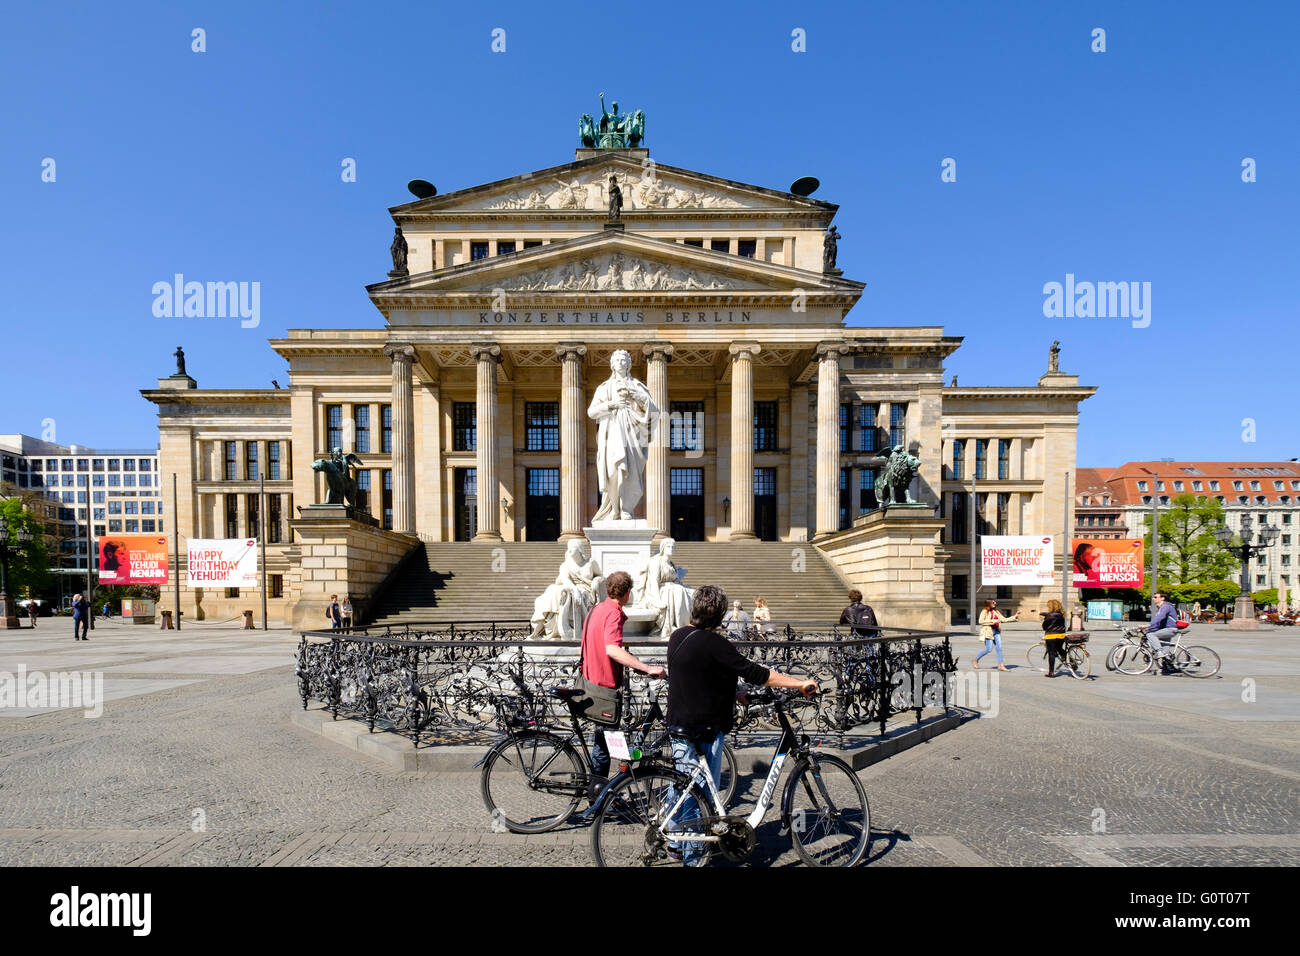 Konzerthaus and Schiller statue in Gendarmenmarkt square in Mitte Berlin Germany - Stock Image